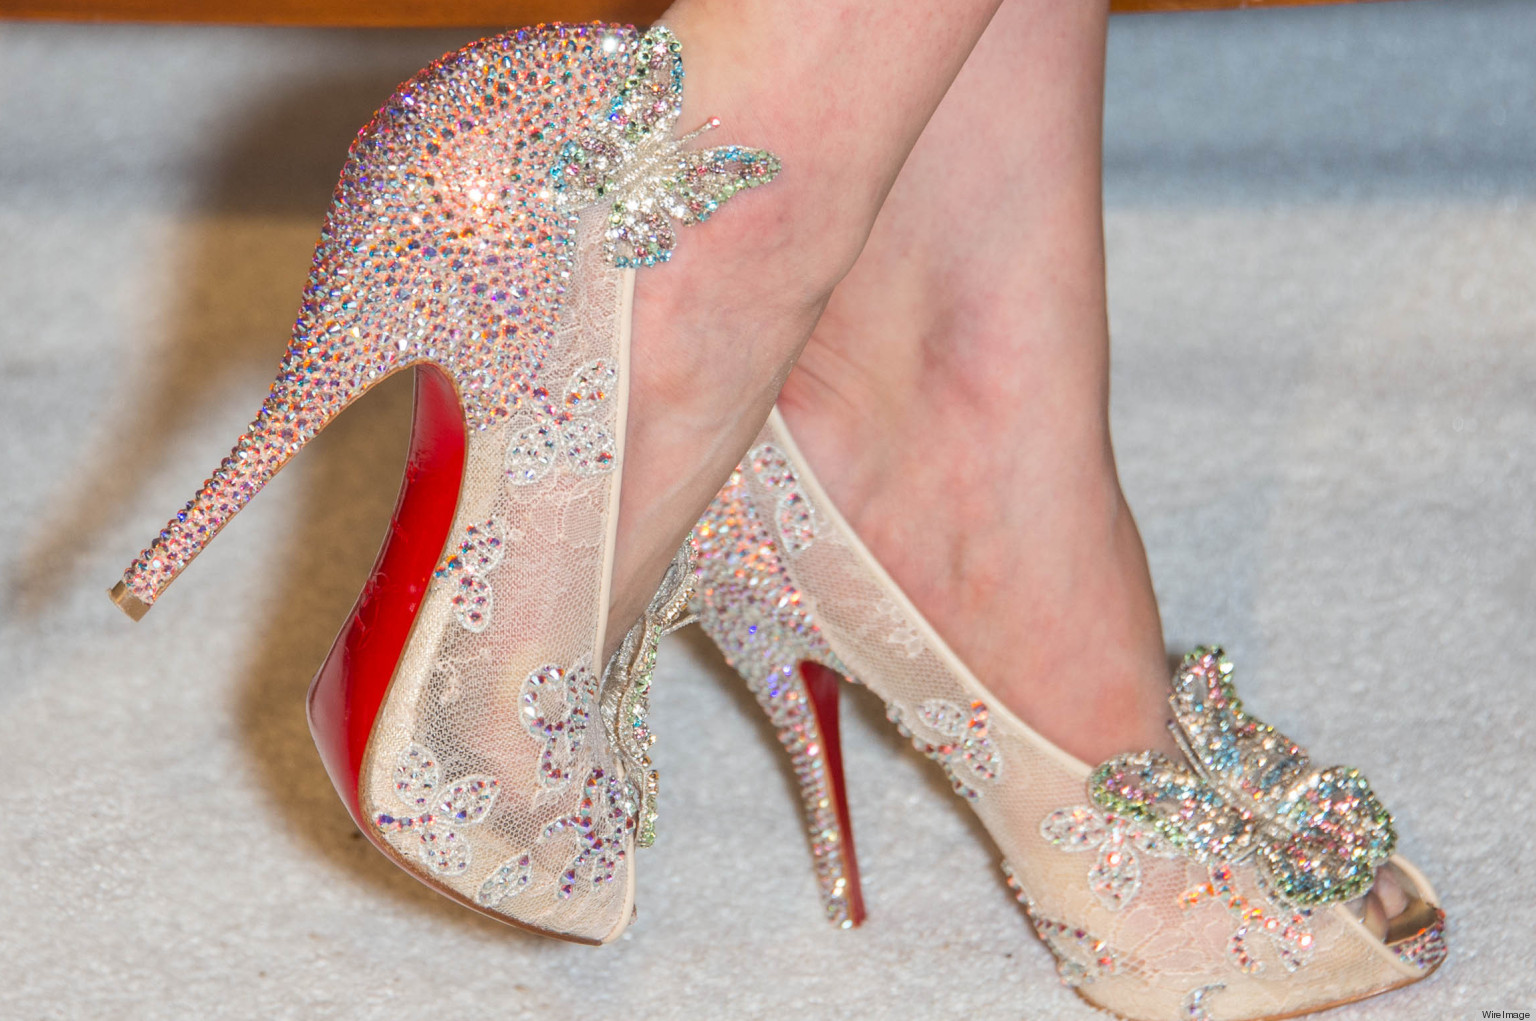 louboutin wedding shoes blue sole photo - 1